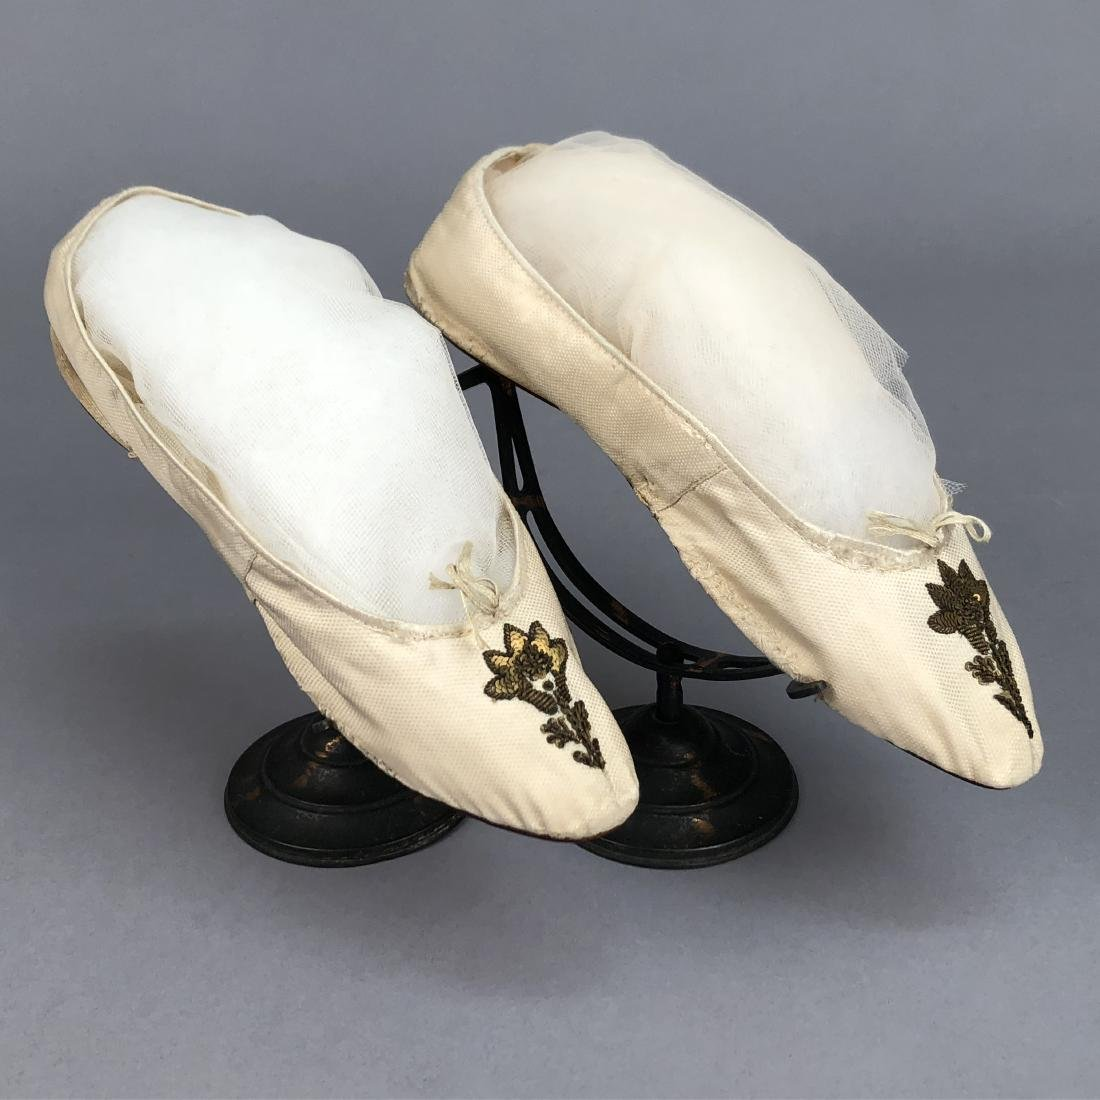 FIGURED SILK SHOES with METALLIC EMBROIDERY, c. 1800